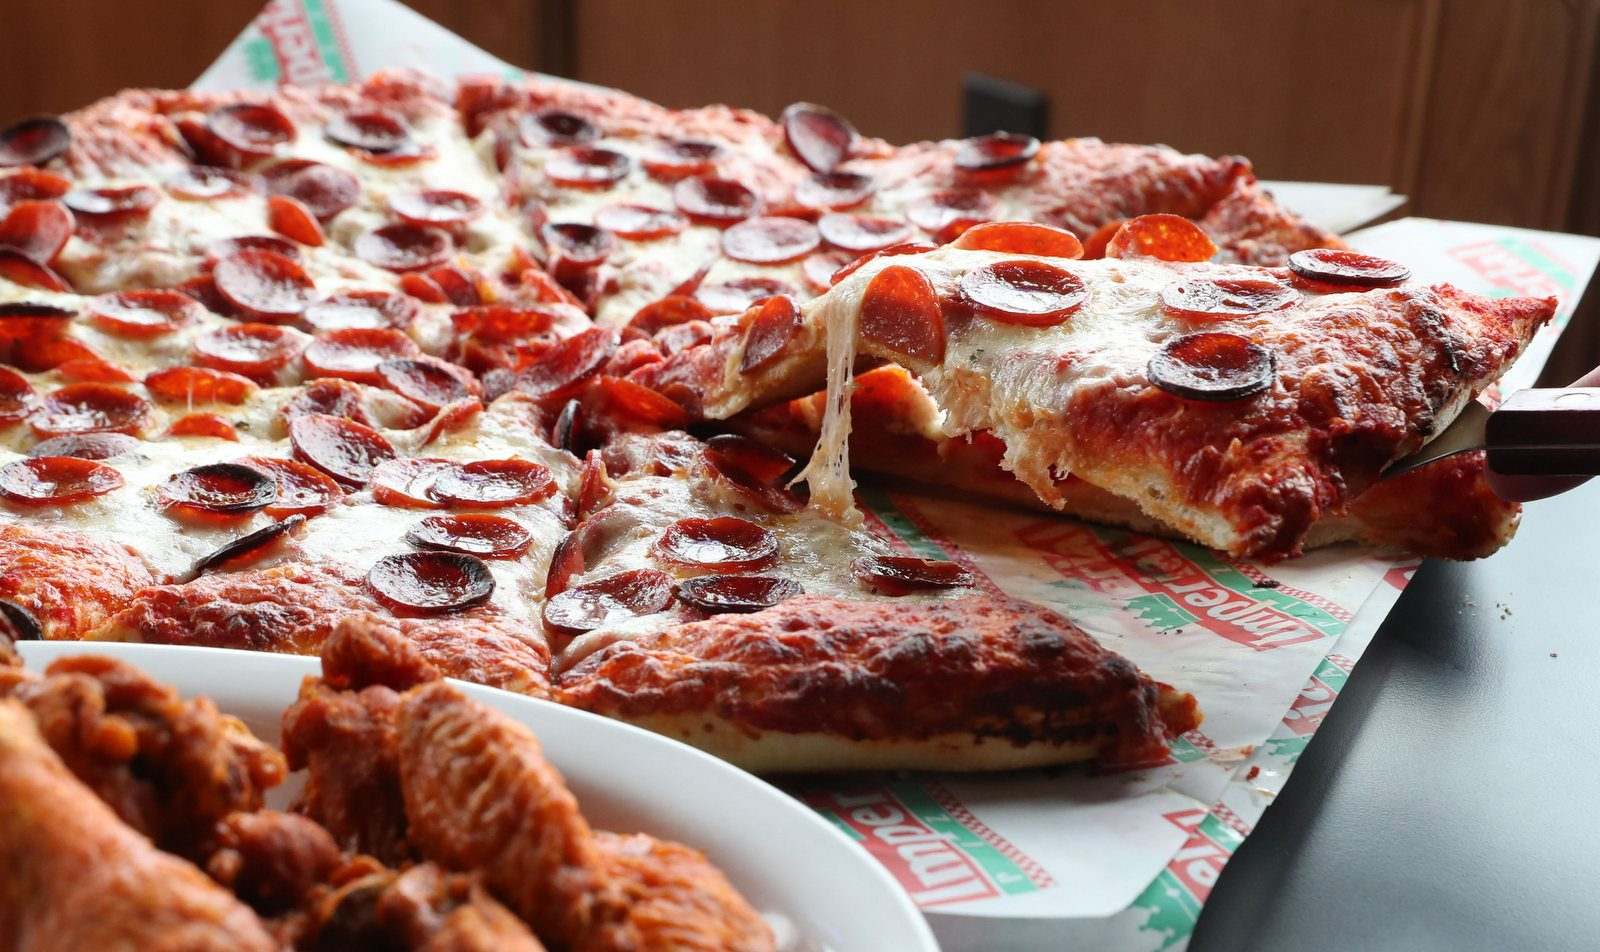 Large cheese and pepperoni pizza and a double order of hot wings at Imperial Pizza. (Sharon Cantillon/Buffalo News)